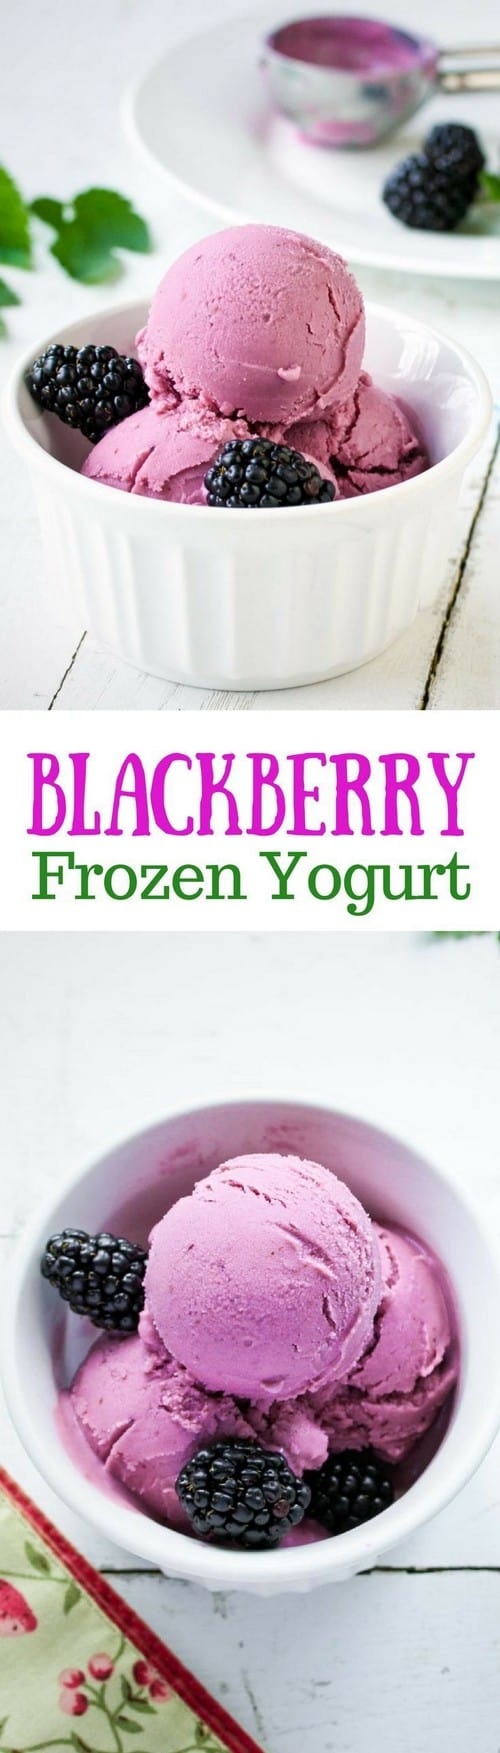 Mediterranean Blackberry Frozen Yogurt